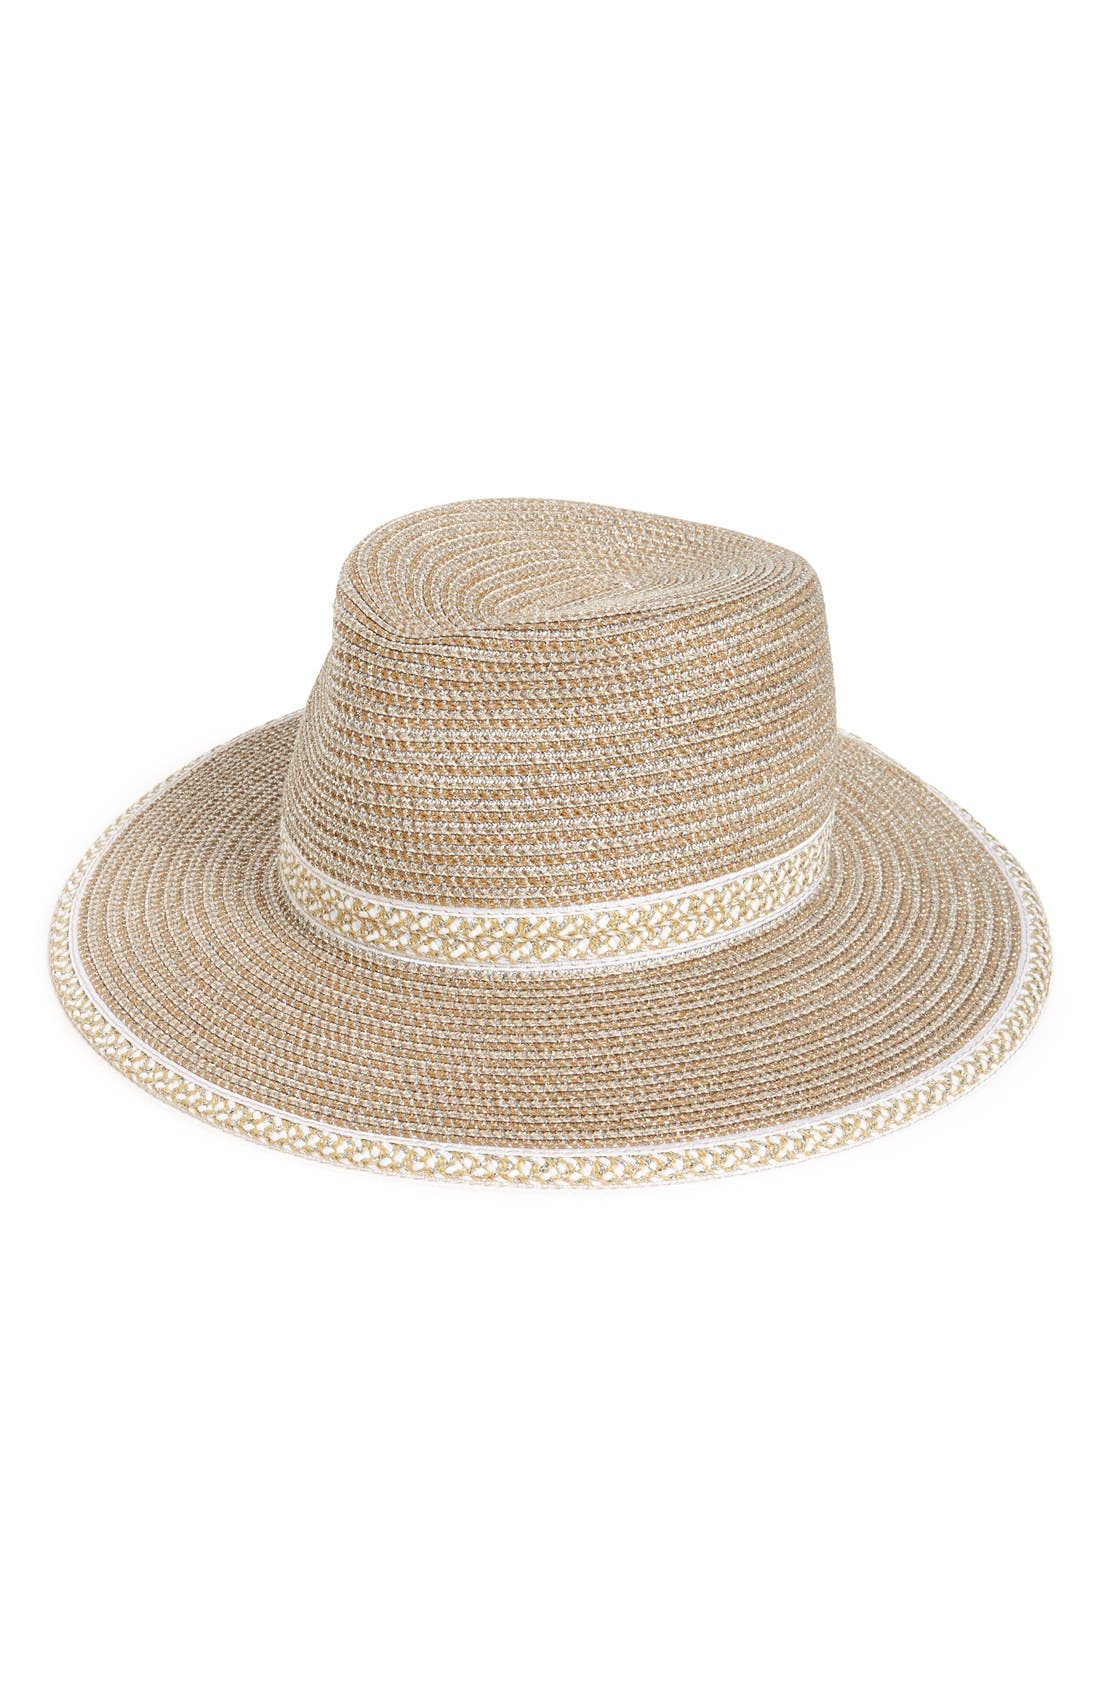 'Georgia' Woven Hat,                         Main,                         color, Frost/ White